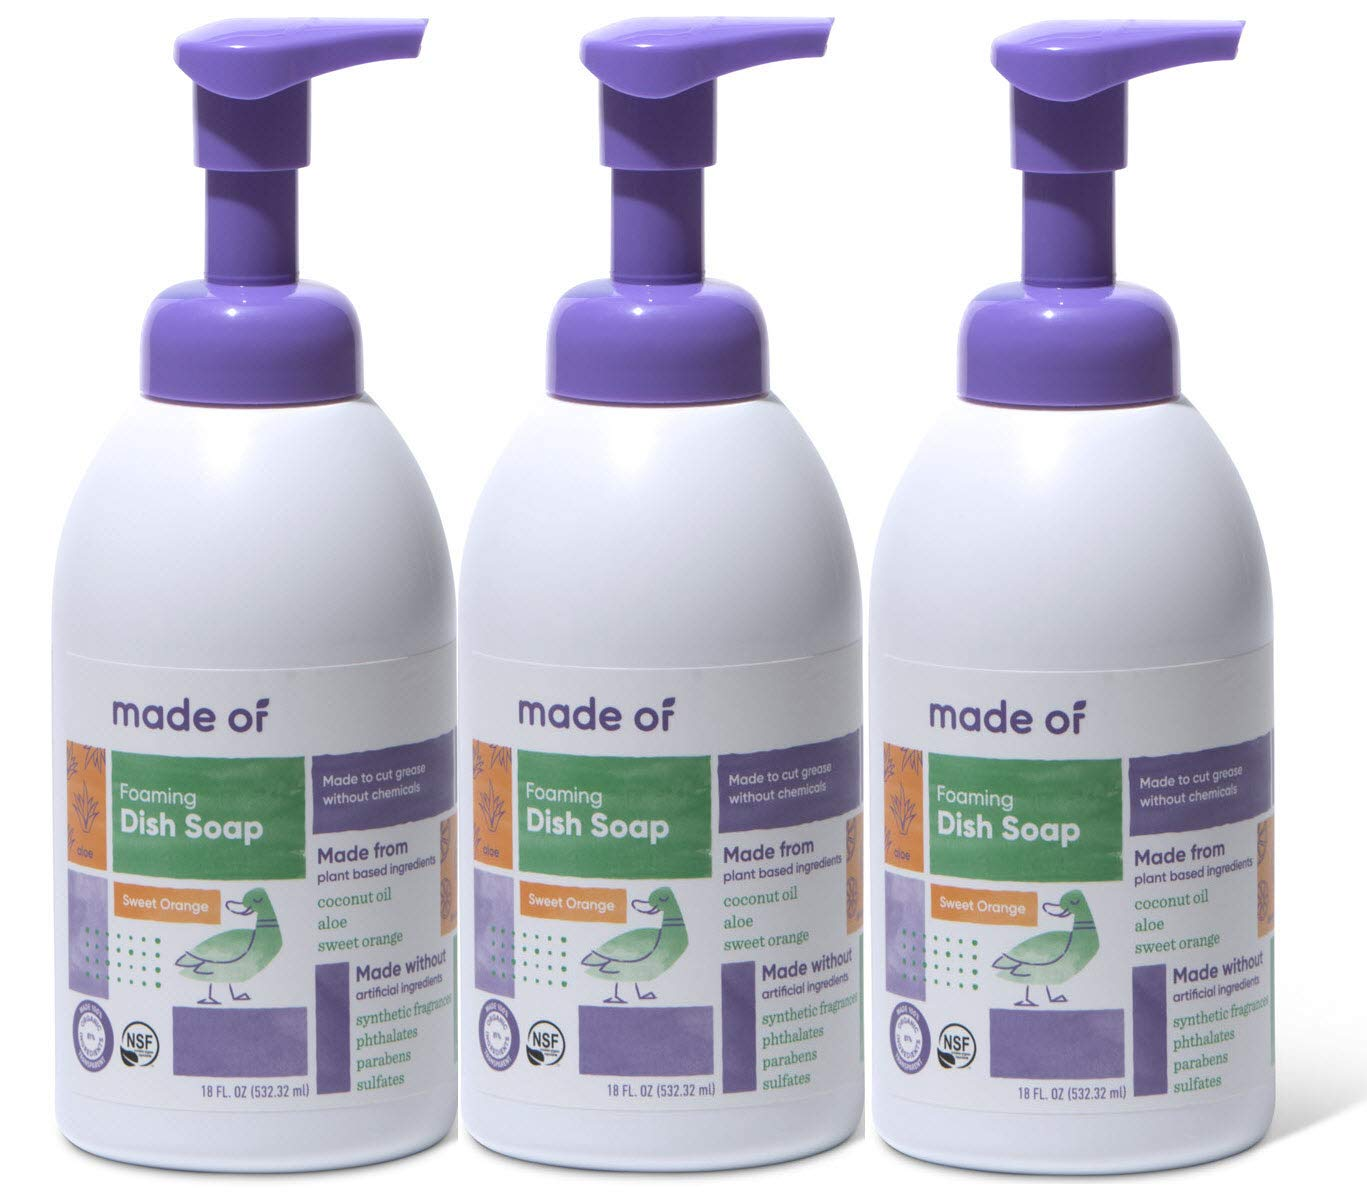 Organic Dish Soap by MADE OF - 100% Natural Dish Soap - for Baby Bottles - NSF Organic and Vegan - Made in USA - 18oz (Sweet Orange, 1-Pack) (3-Pack) by MADE OF